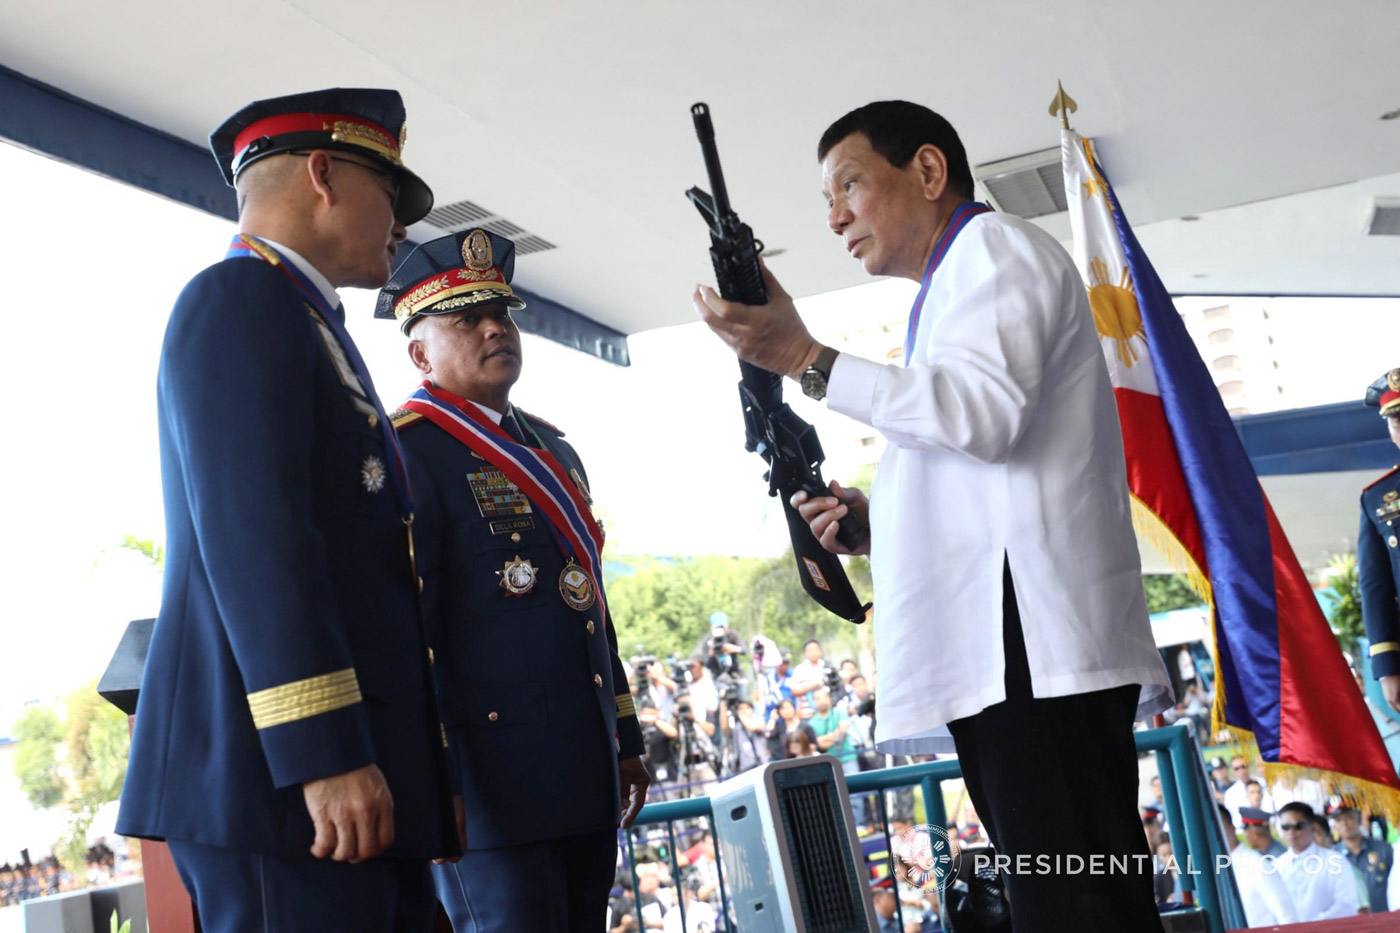 SUPPORTIVE PRESIDENT. President Duterte at the turnover ceremony of PNP chiefs Dela Rosa and Albayalde. Malacau00f1ang photo